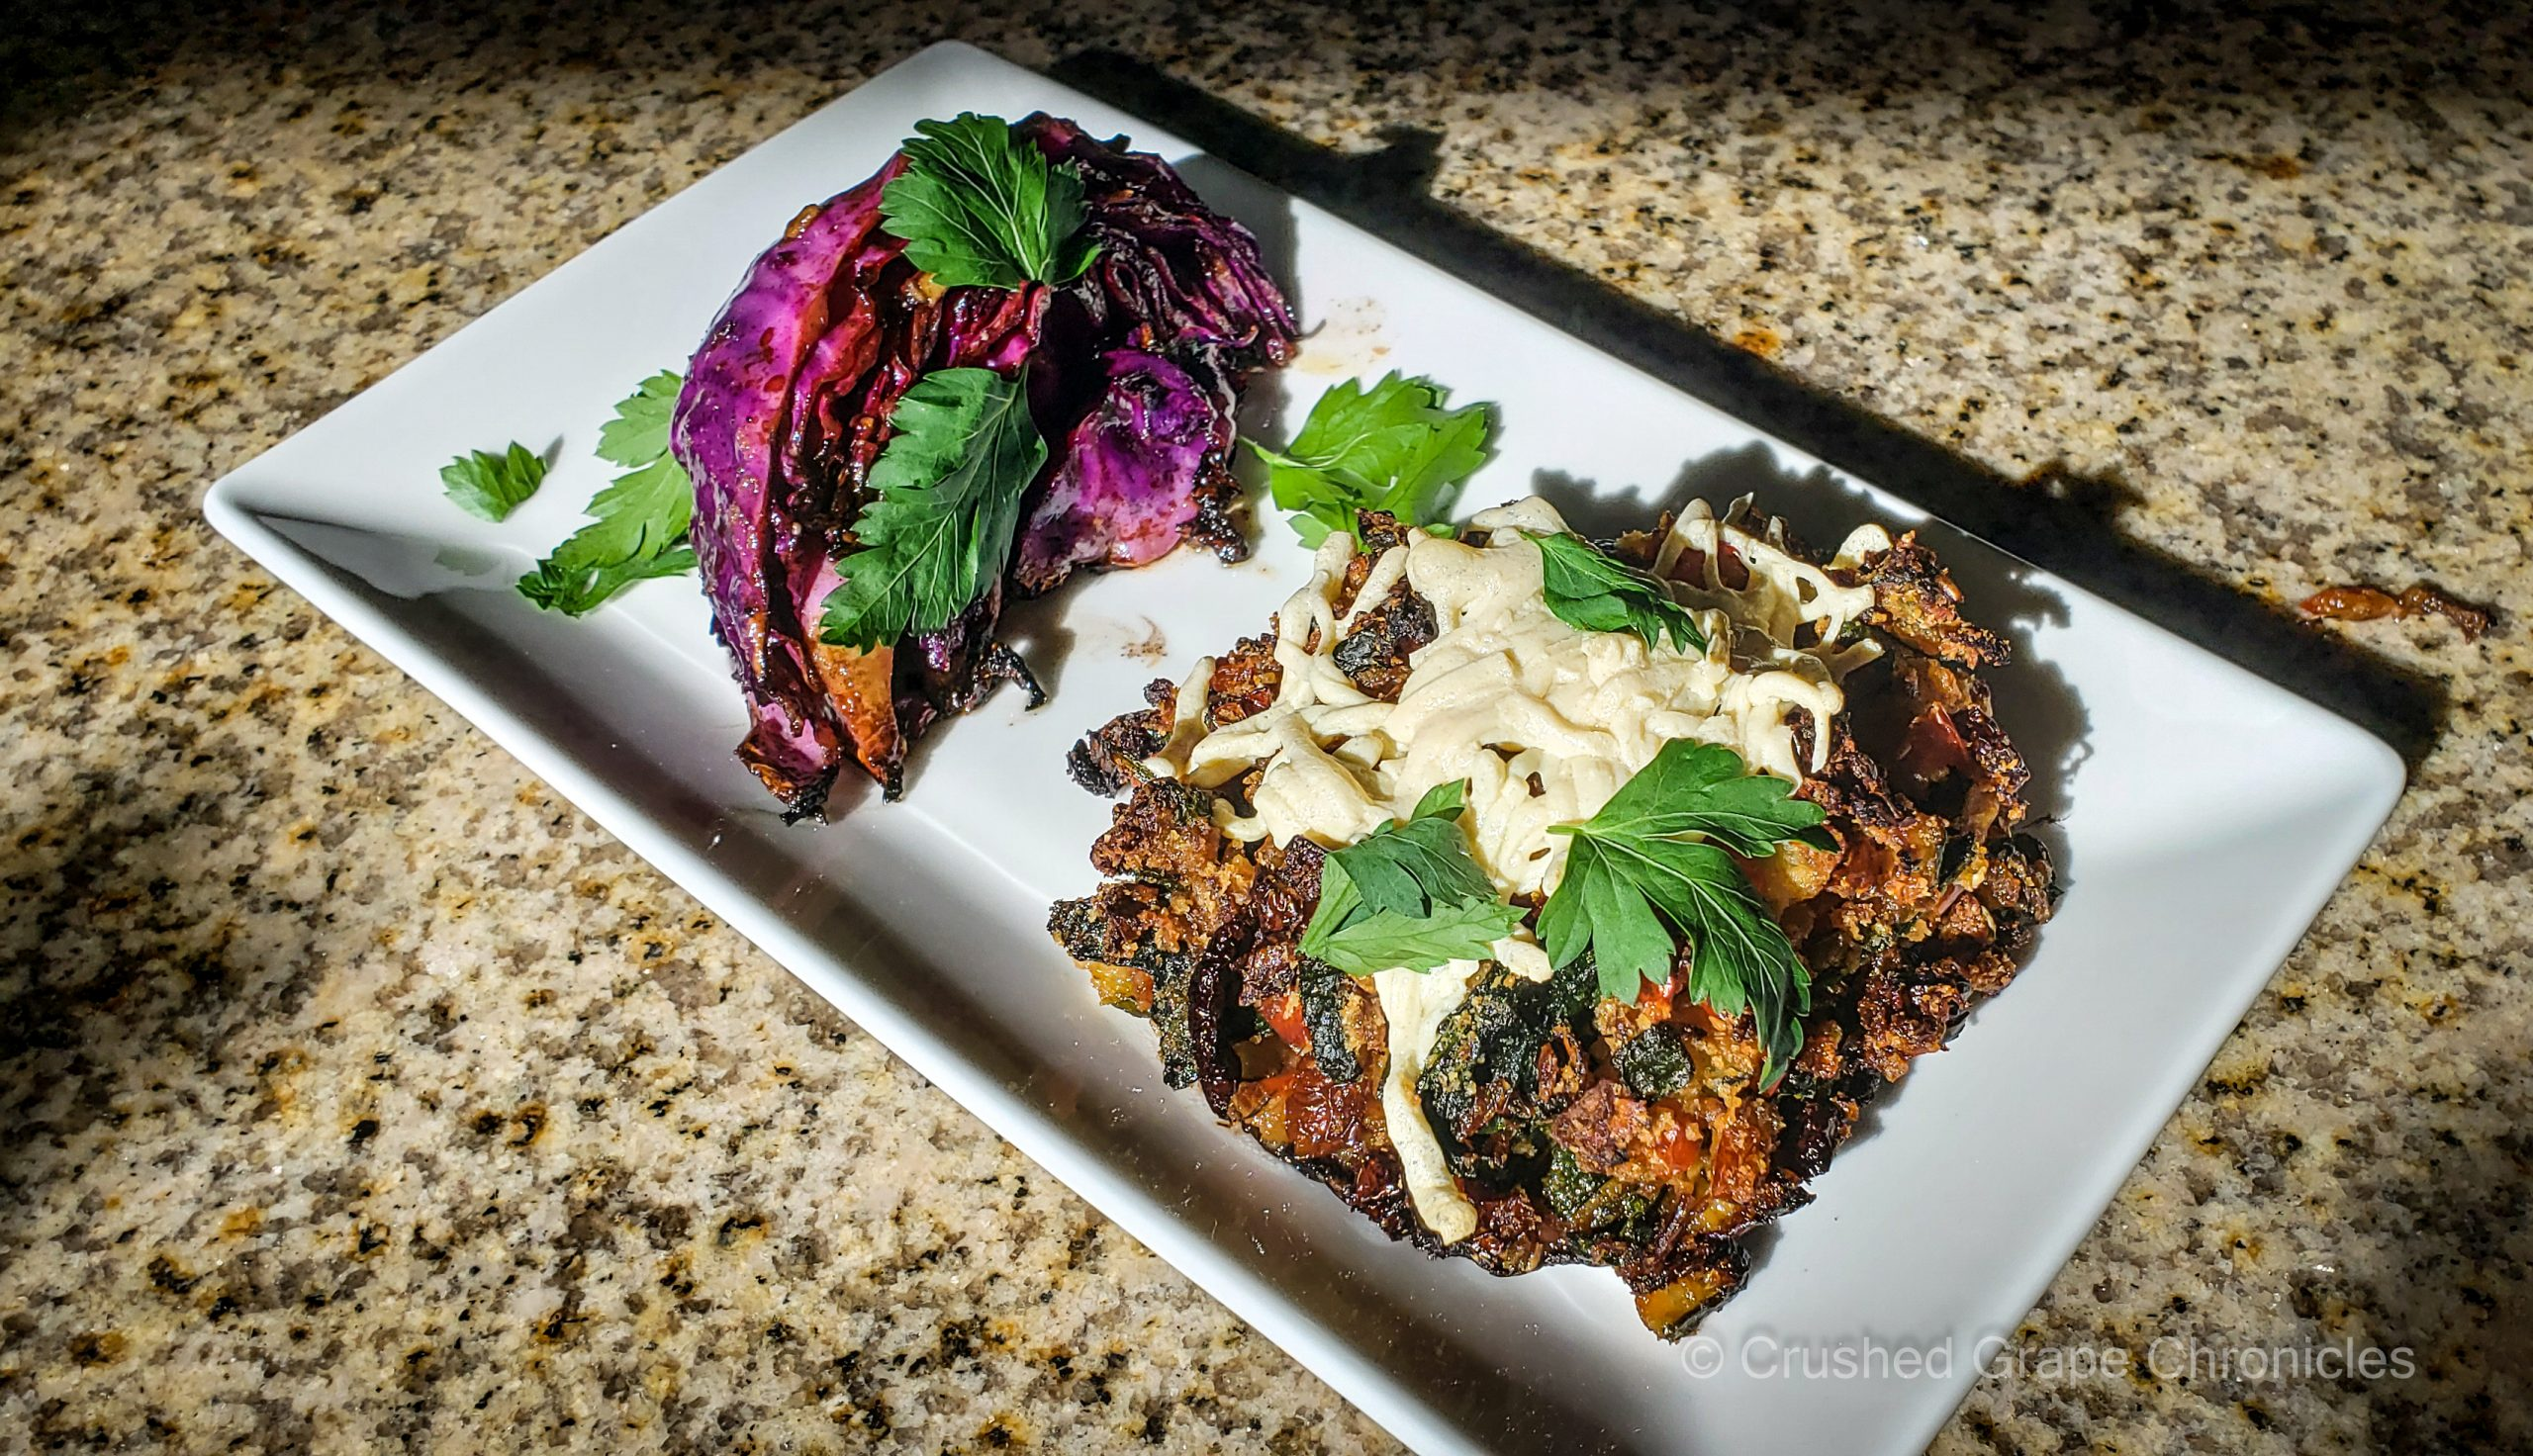 Stuffed Vegan Portabello Mushrooms and L'Ecole Cabernet